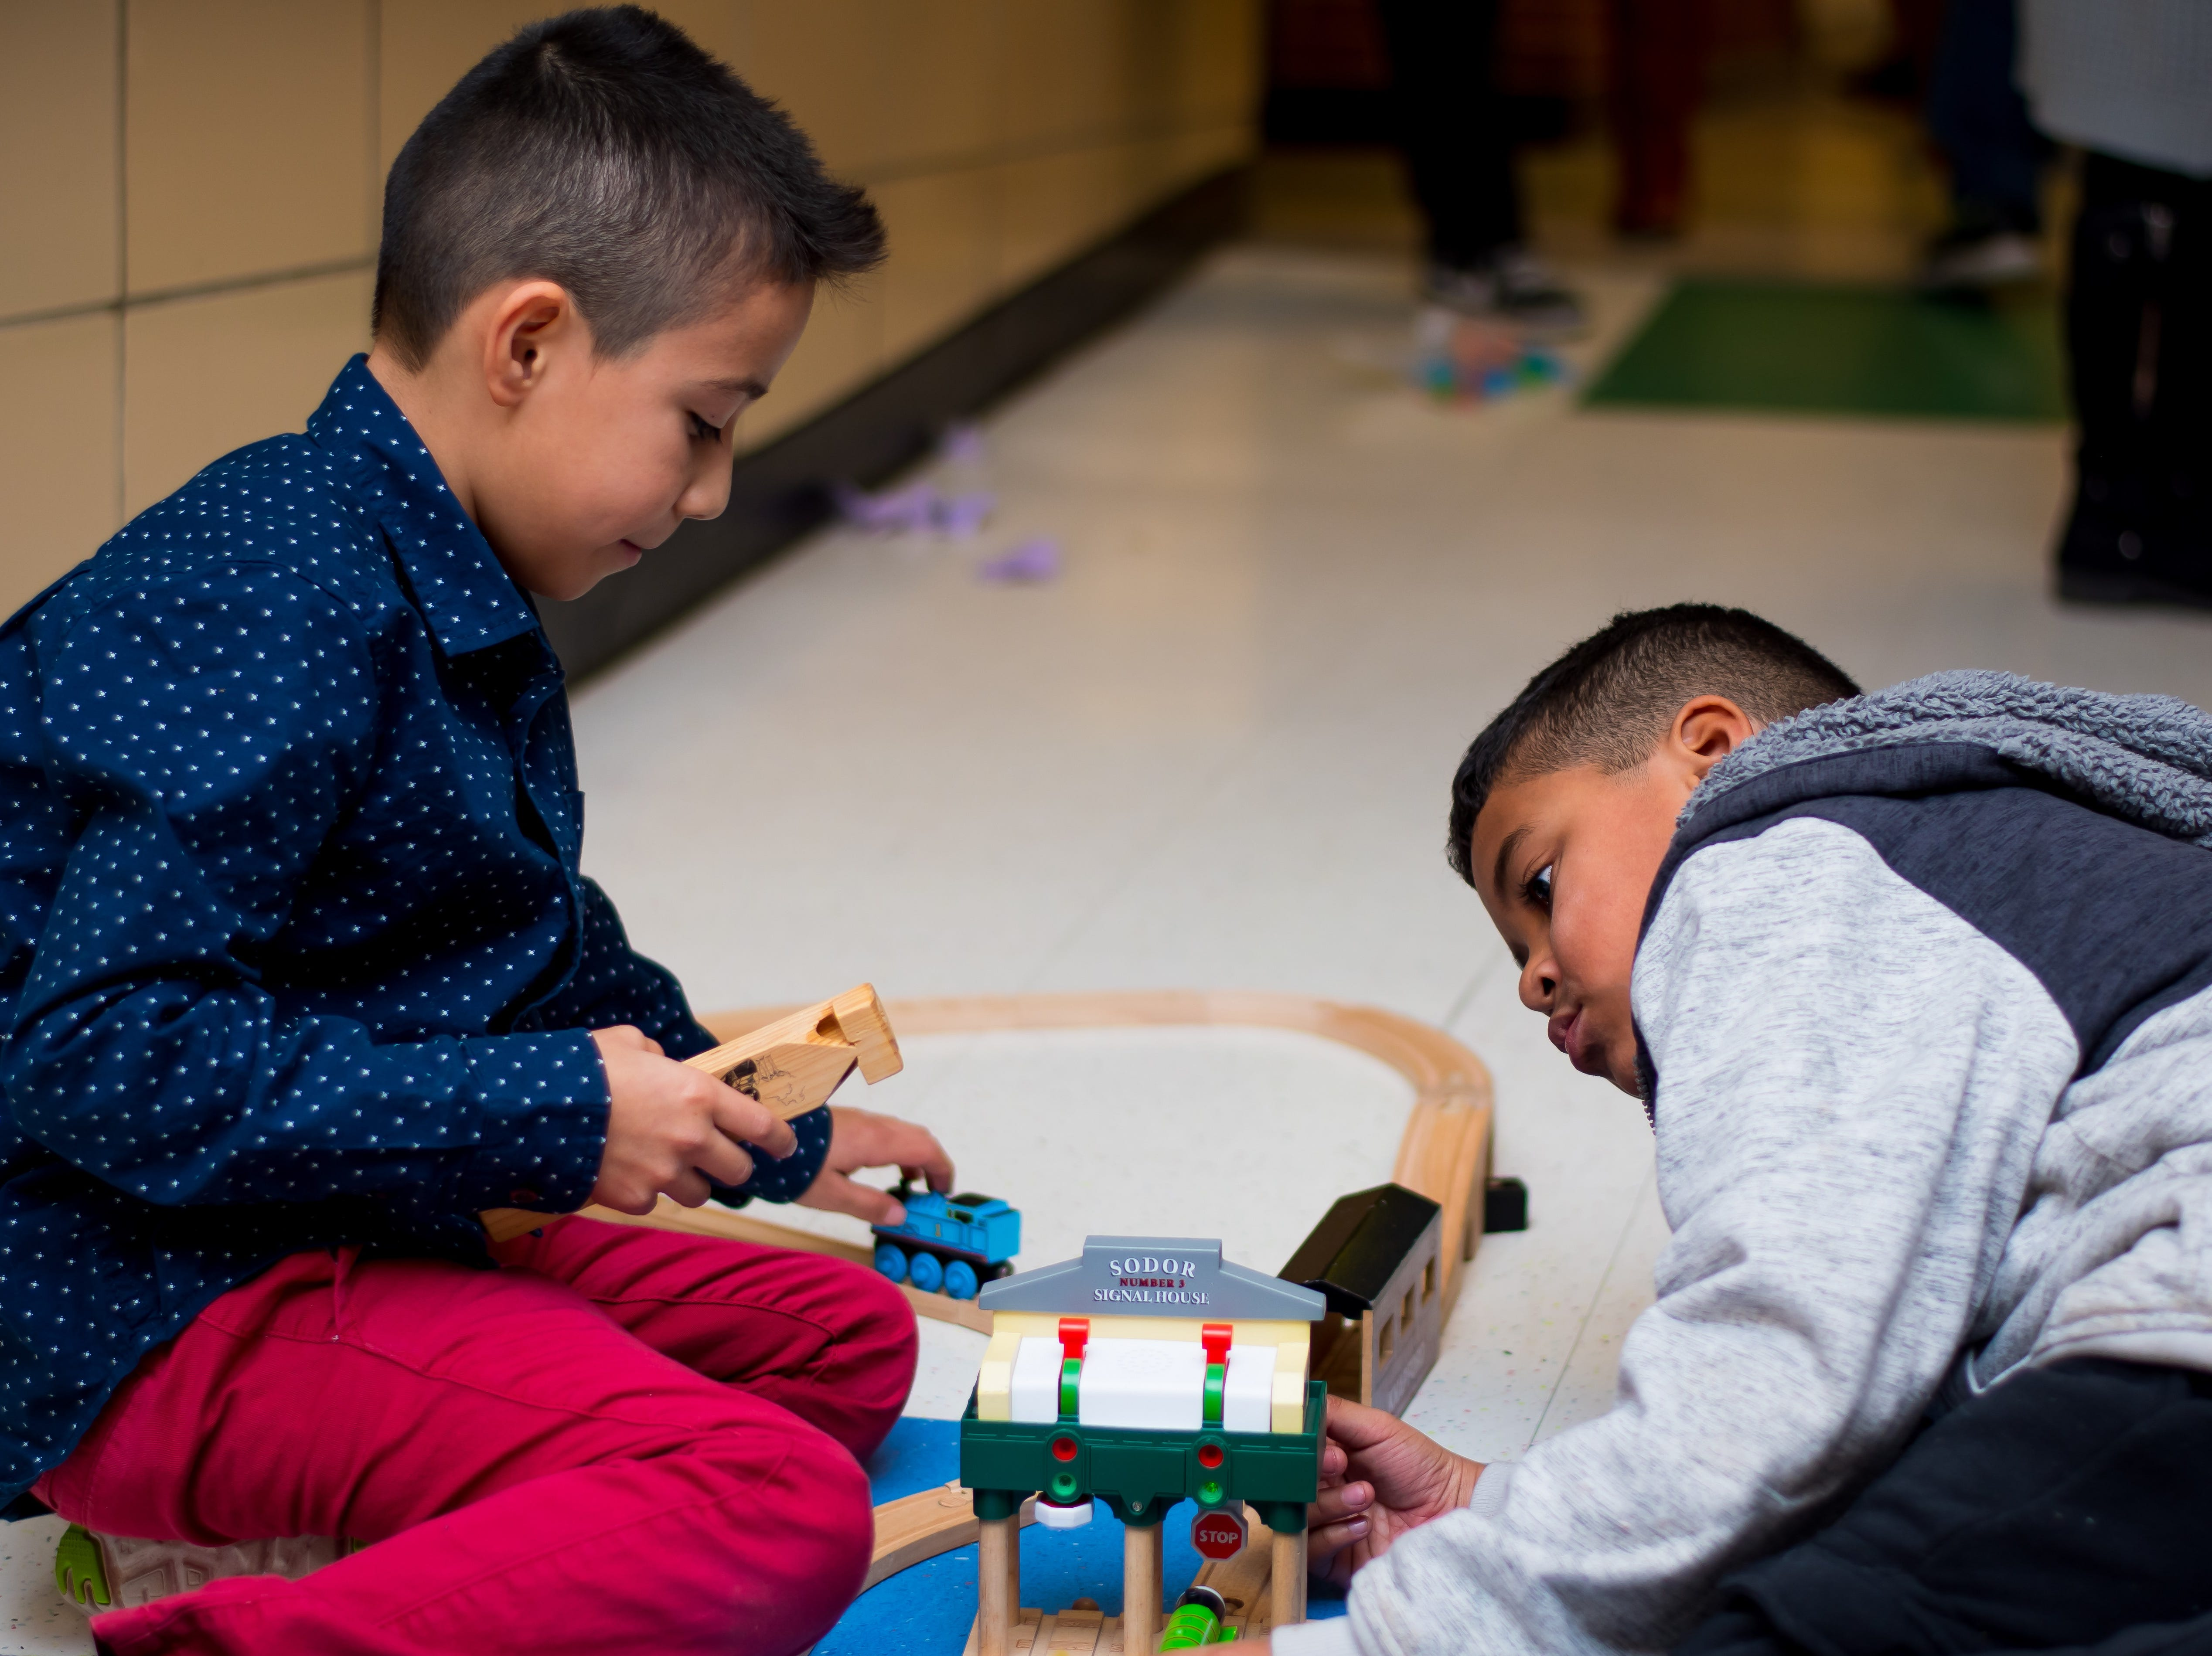 Fredy Mondragon, 8, and Abel Bustos-Bracamonte, 9, both of Clive set up trains for their part of the Celebrate Crestview event on Tuesday, Dec. 11, 2018 at Crestview School of Inquiry in Clive. Students learned the history of immigration in Clive and the impact it has had on Crestview.